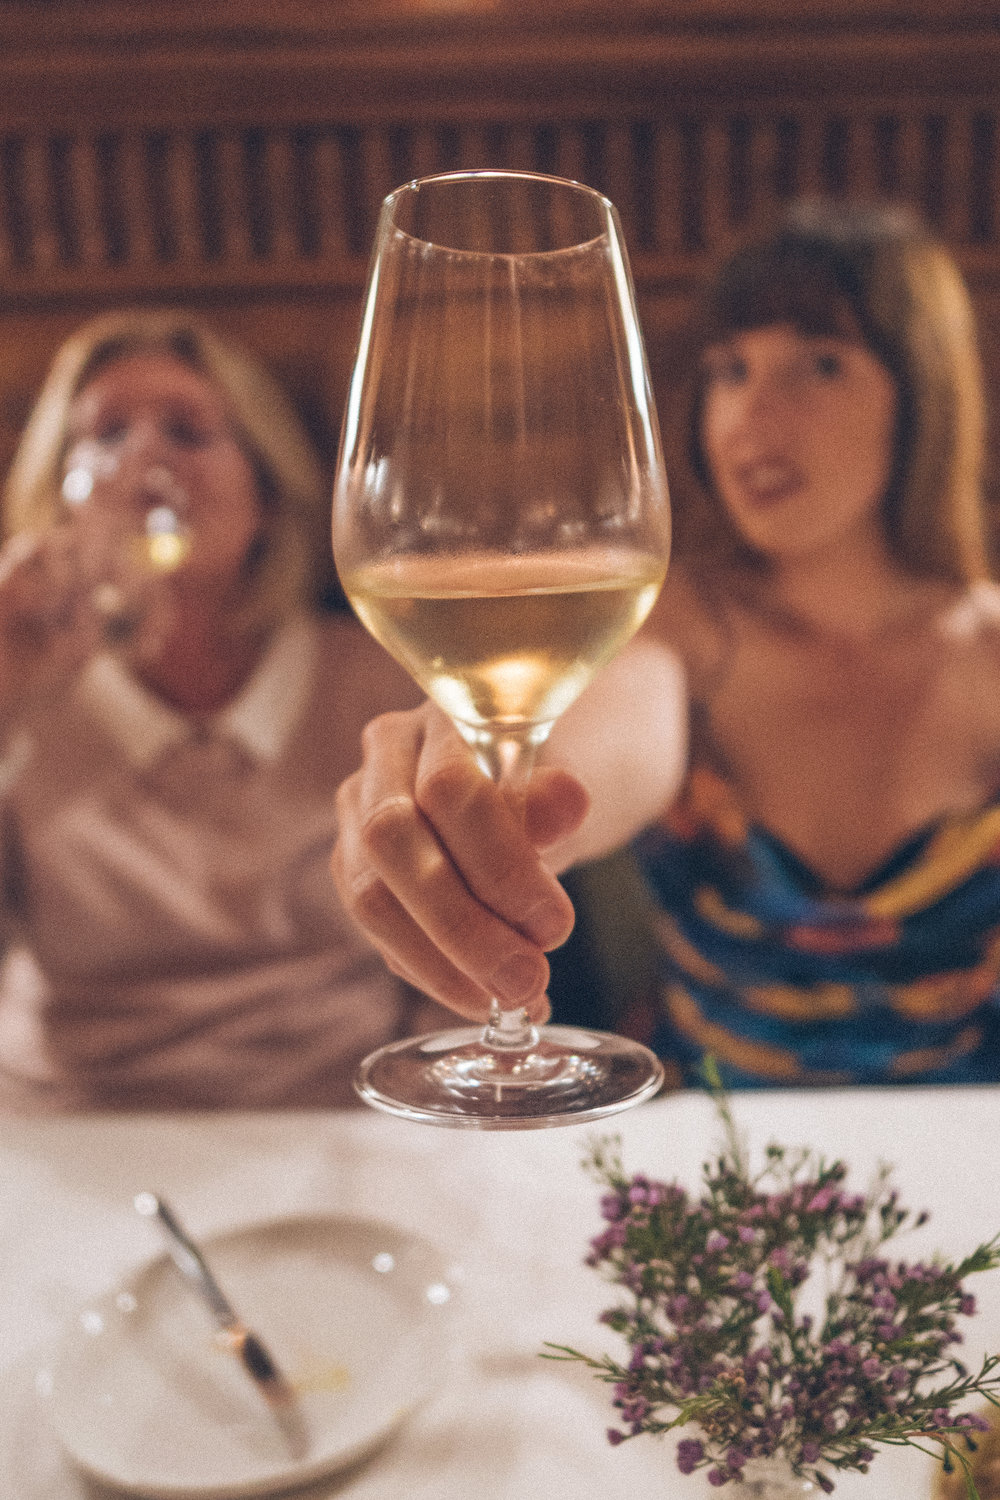 hotel blogr Jamie patterson enjoys wine with mother in law in polish restaurant jade, Wroclaw